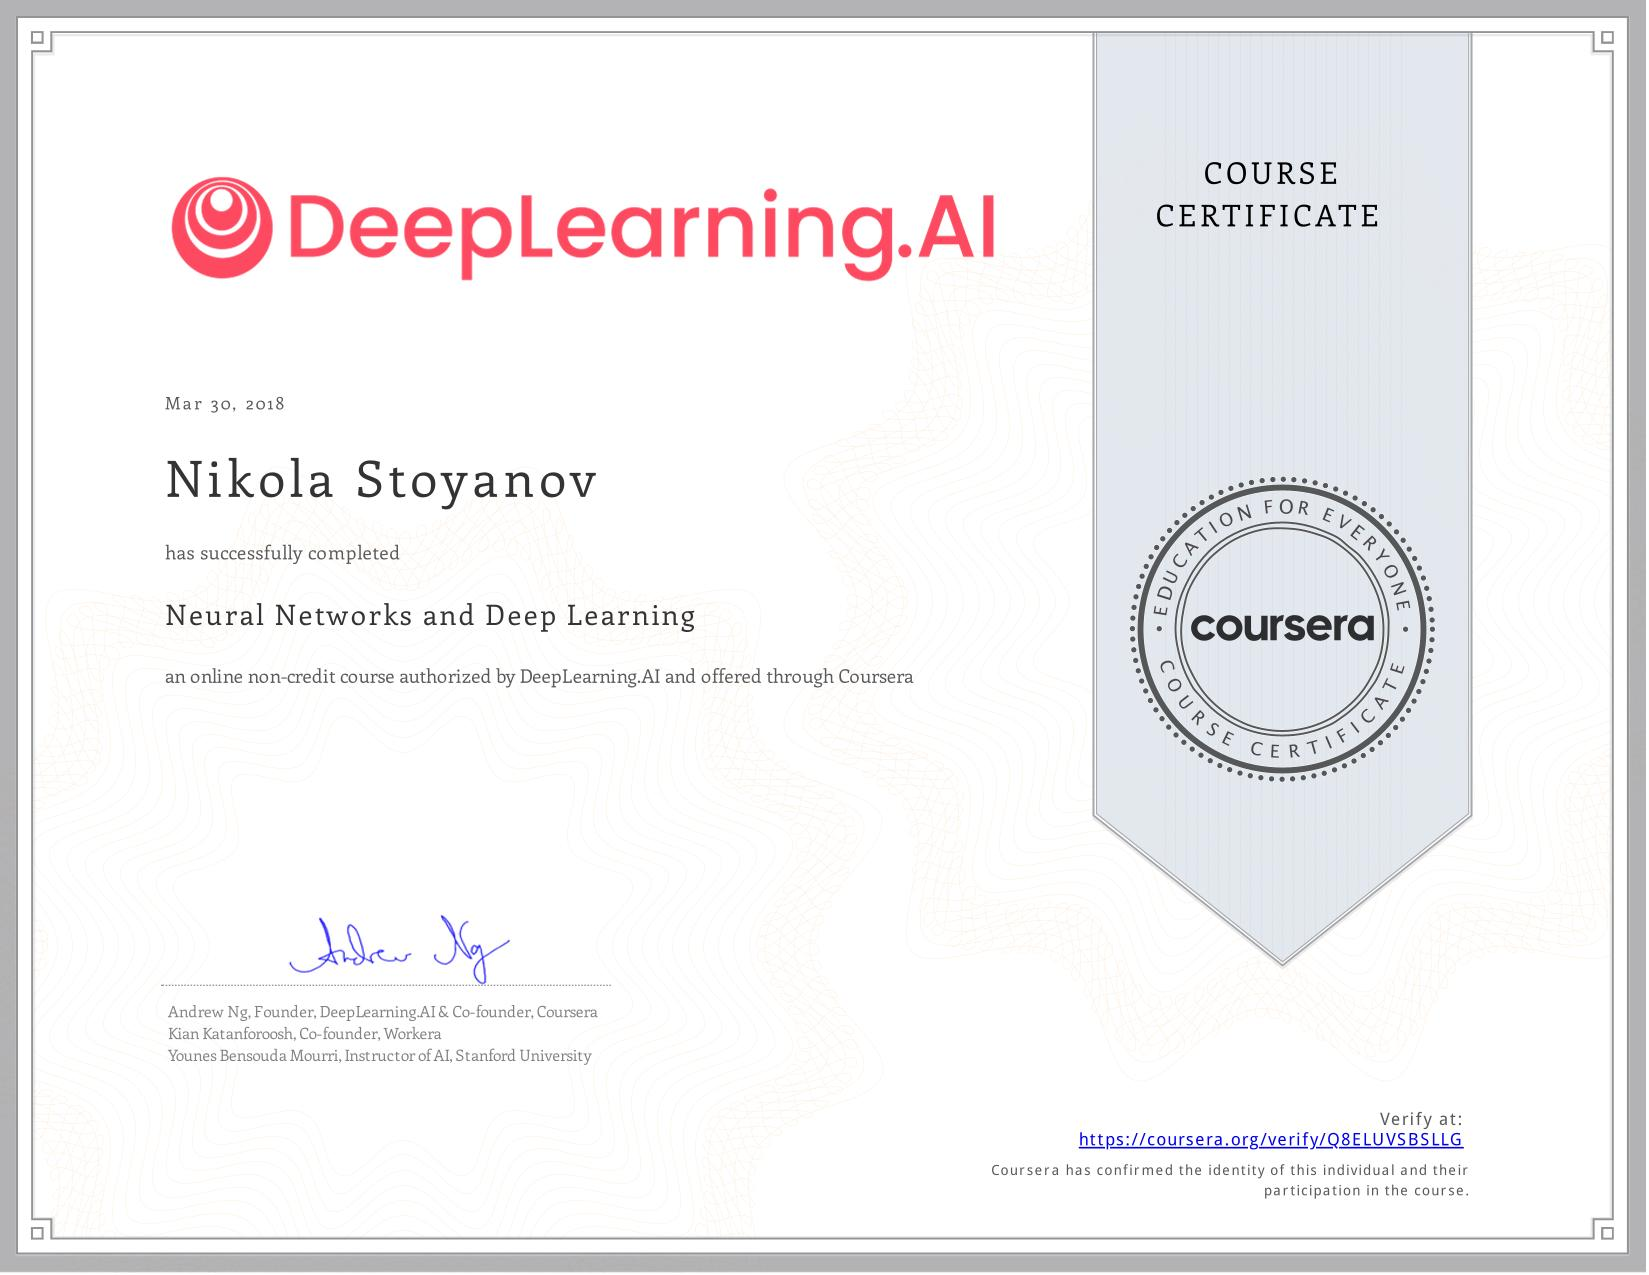 View certificate for Nikola Stoyanov, Neural Networks and Deep Learning, an online non-credit course authorized by deeplearning.ai and offered through Coursera